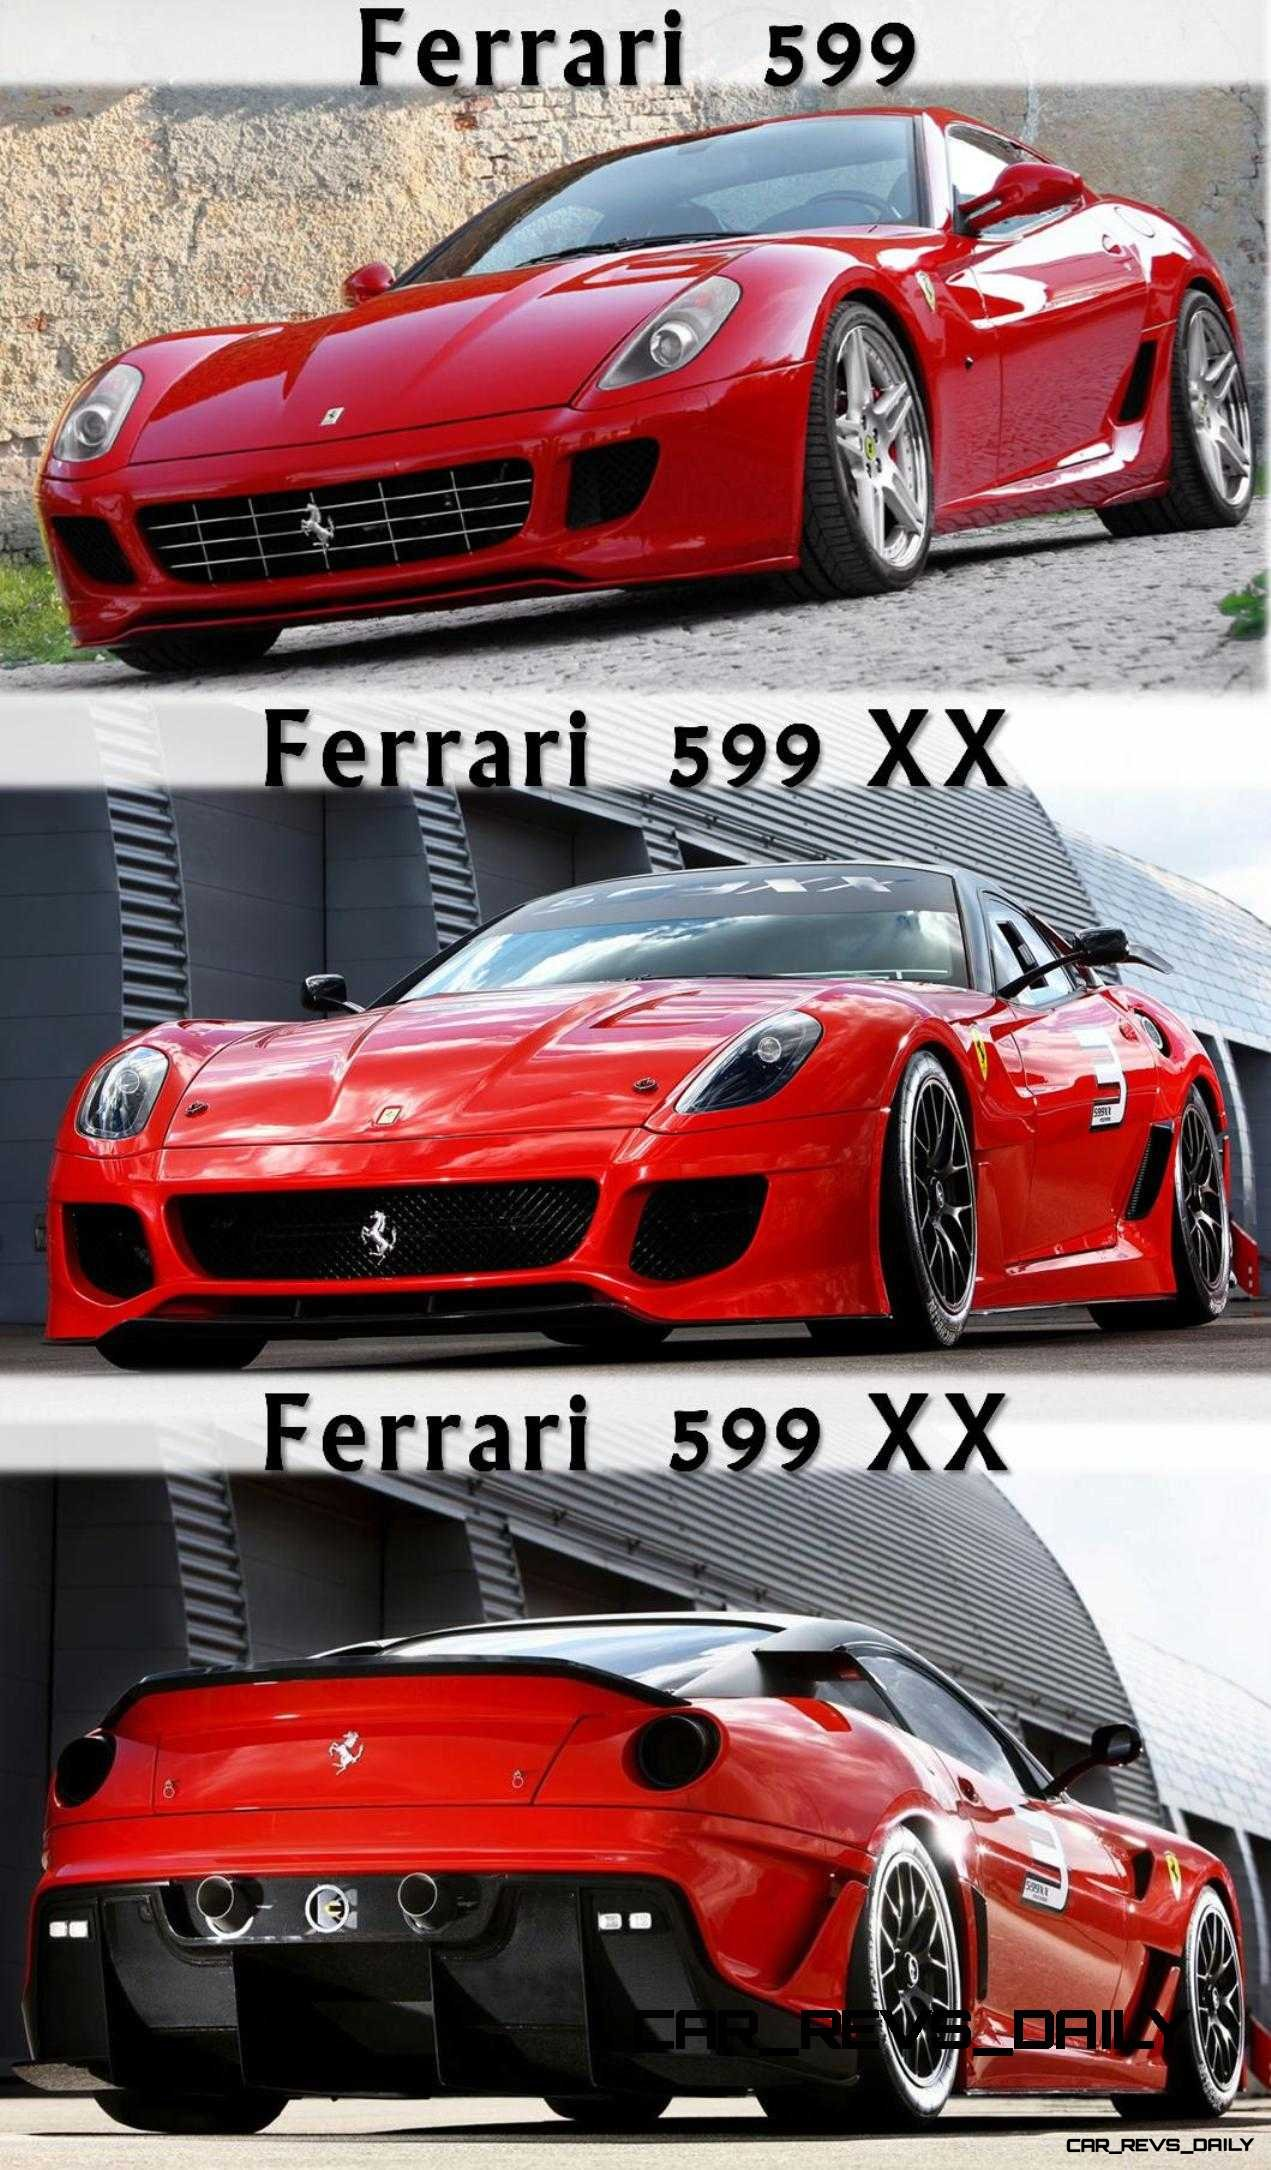 Ferrari 599XX Paris RM Auctions Feb 2014 CarRevsDaily  1